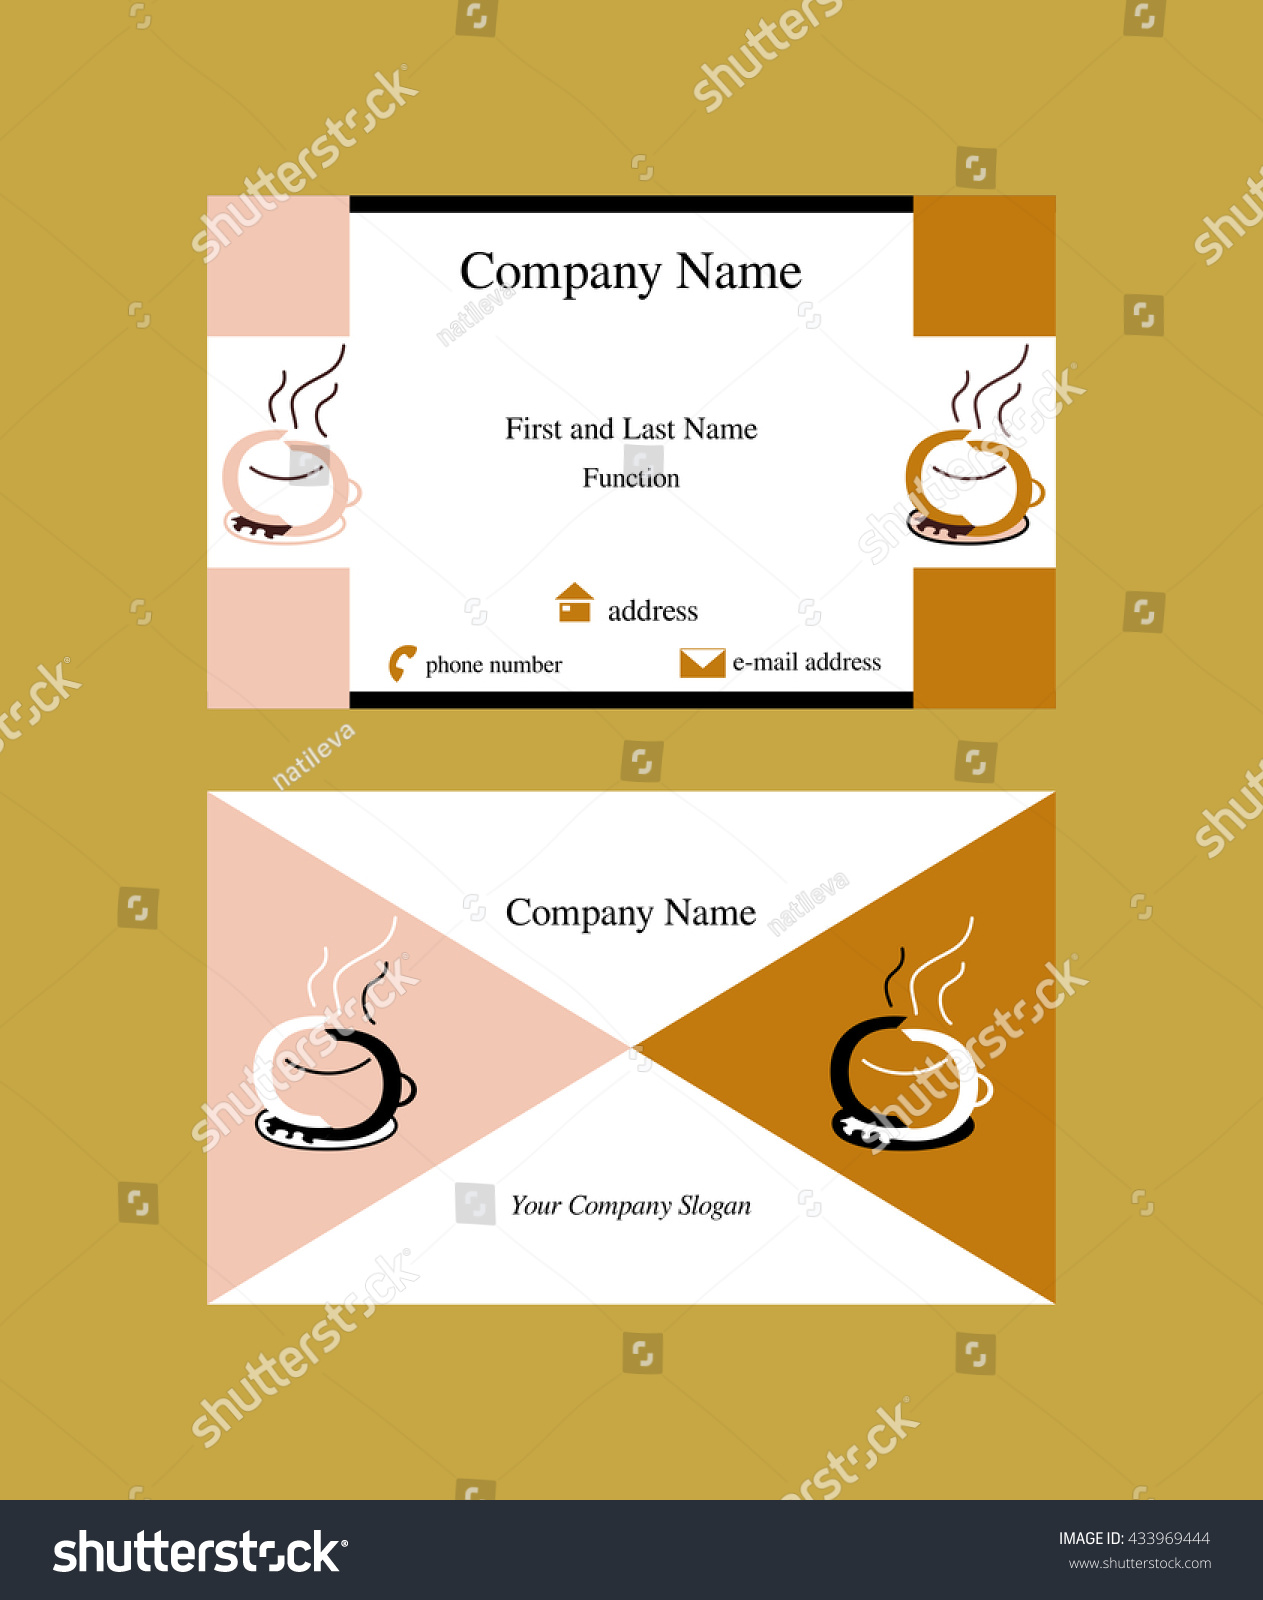 Colorful business card coffee cup logo stock vector 433969444 colorful business card with coffee cup logo symbol made of two c letters facing each other biocorpaavc